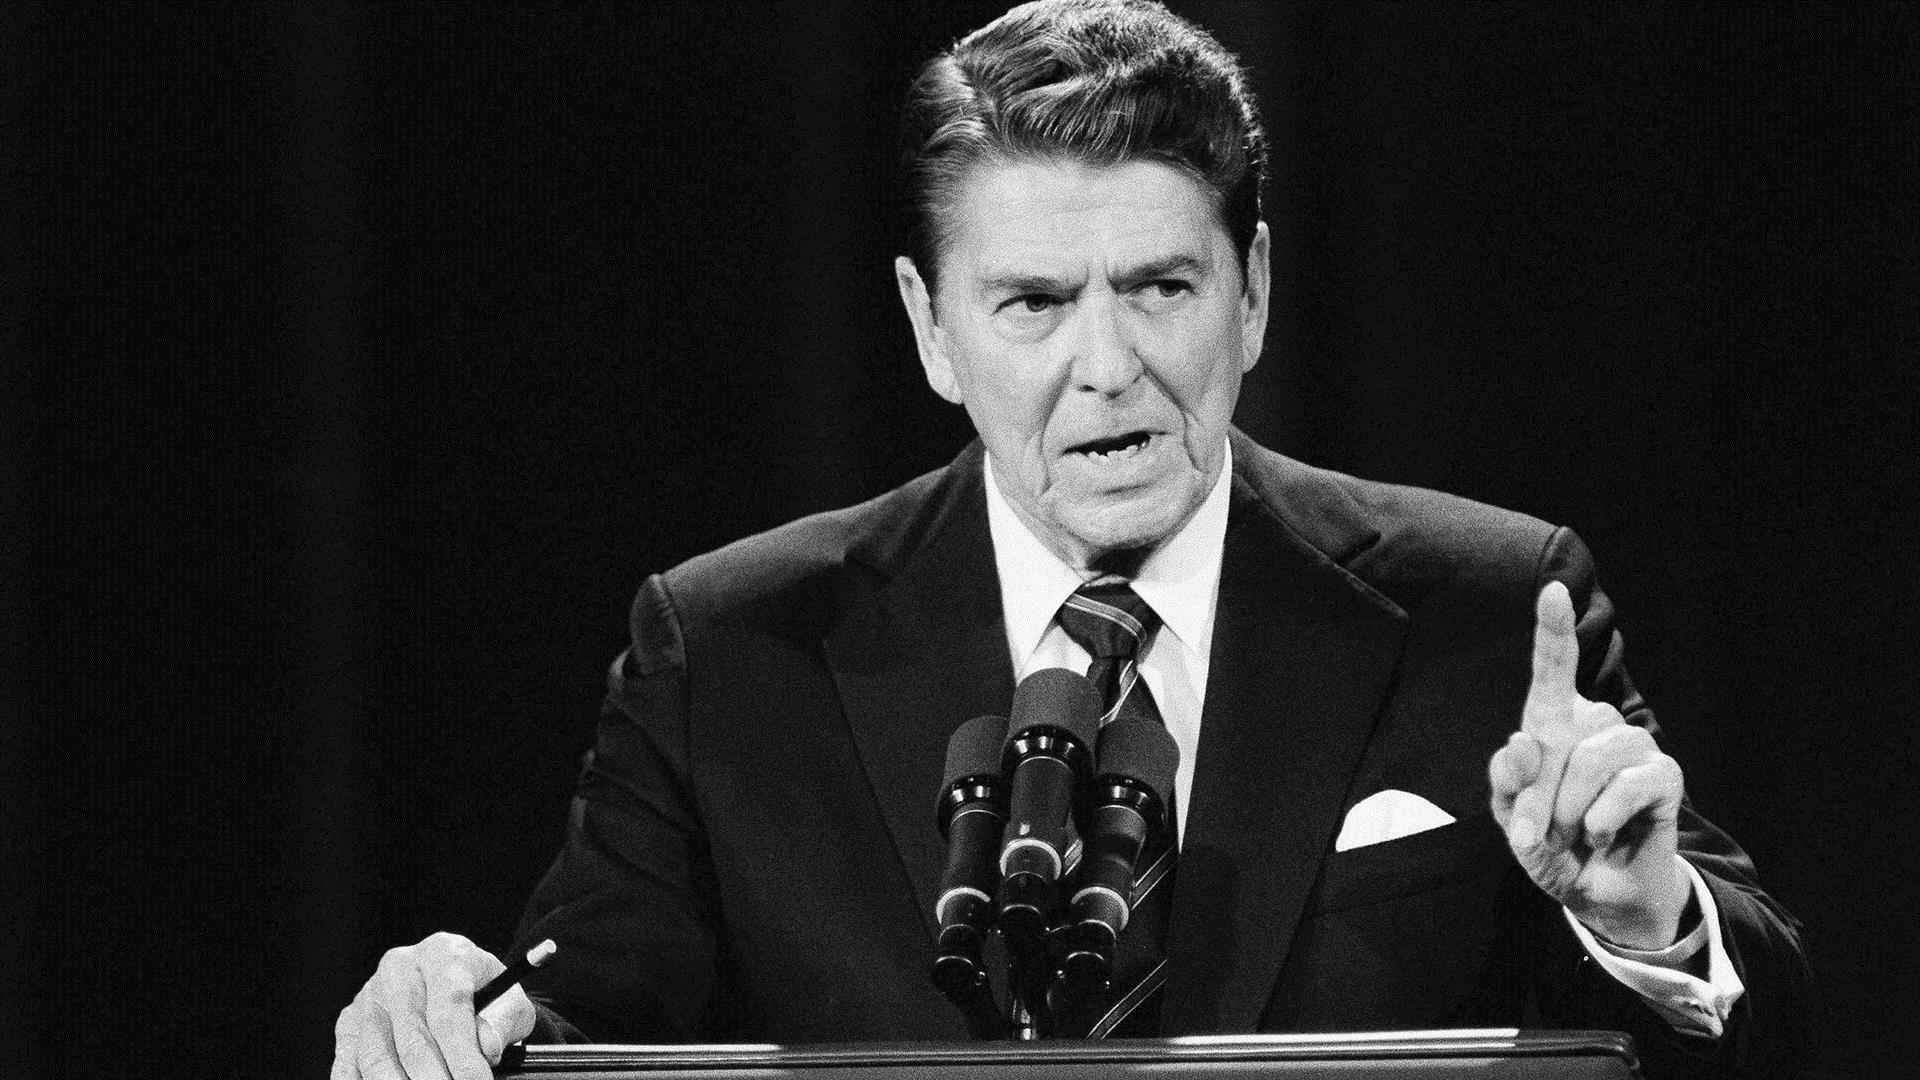 acting pictures of ronald reagan - HD1484×1041